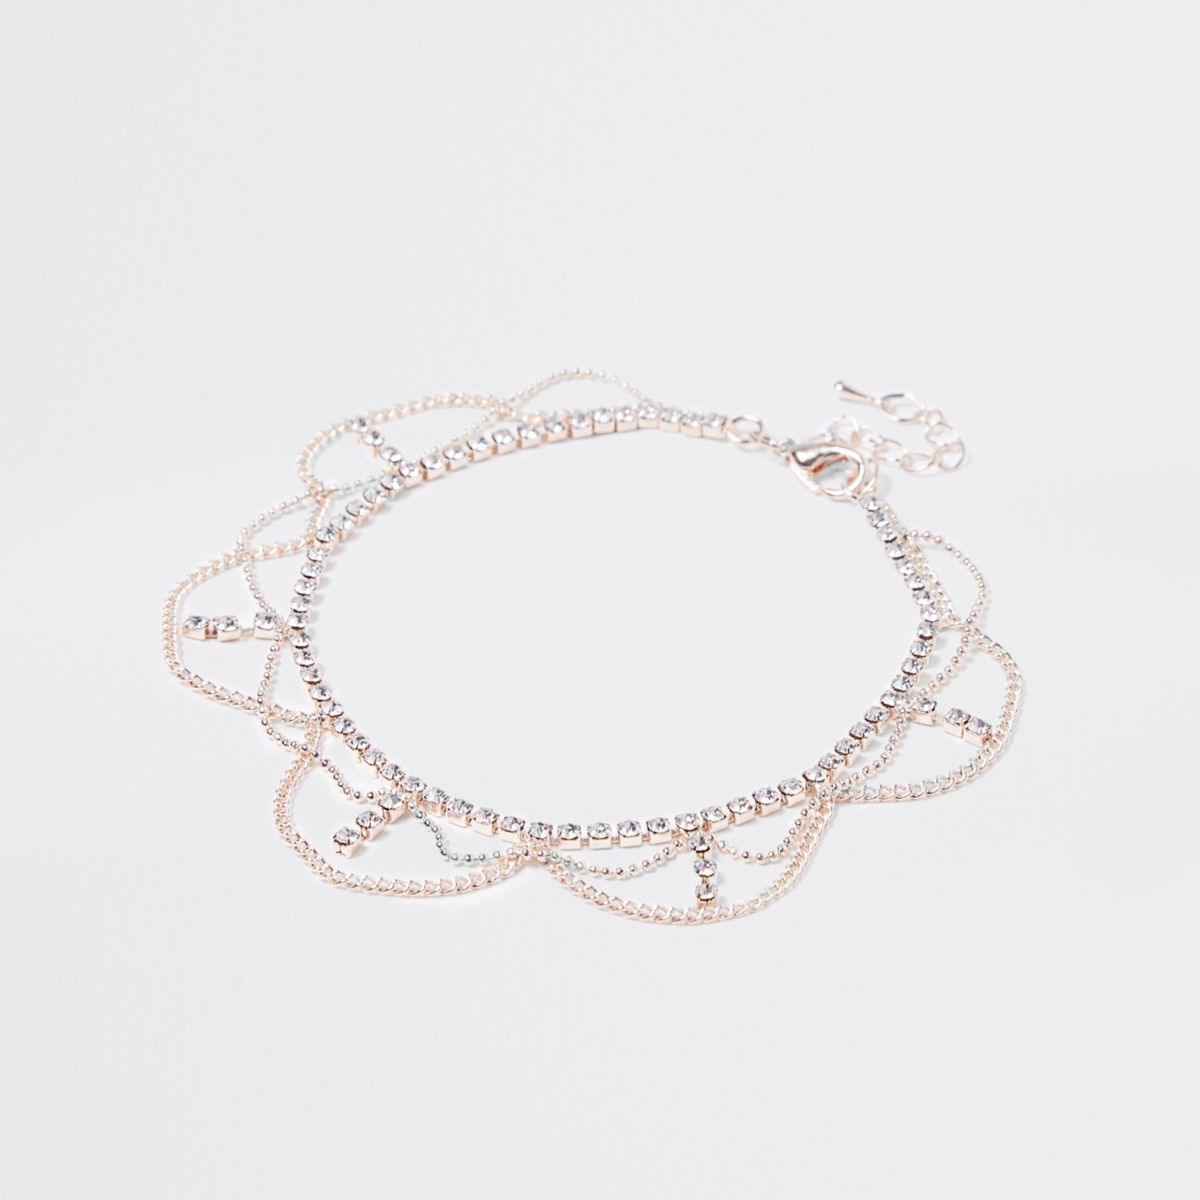 Rose gold tone cupchain drape anklet